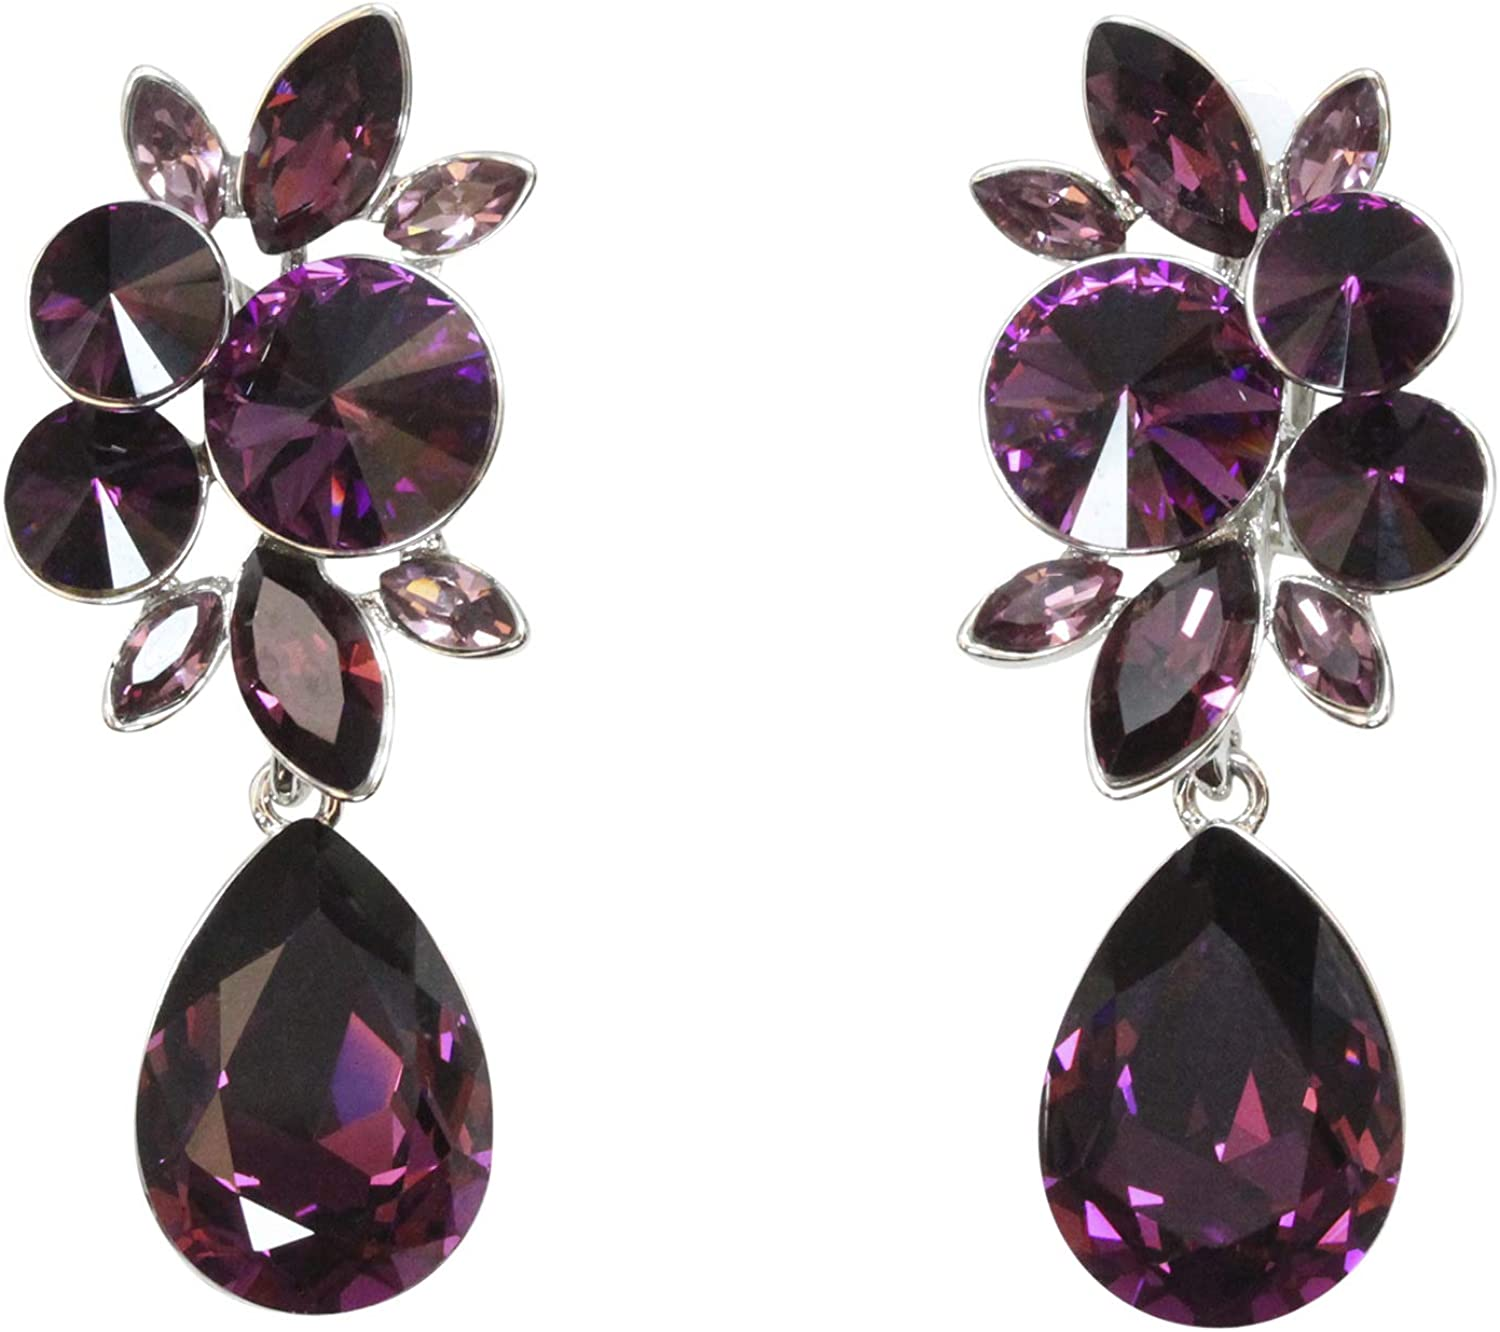 Faship Gorgeous Rhinestone Crystal Dangling Floral Clip On Earrings For Women